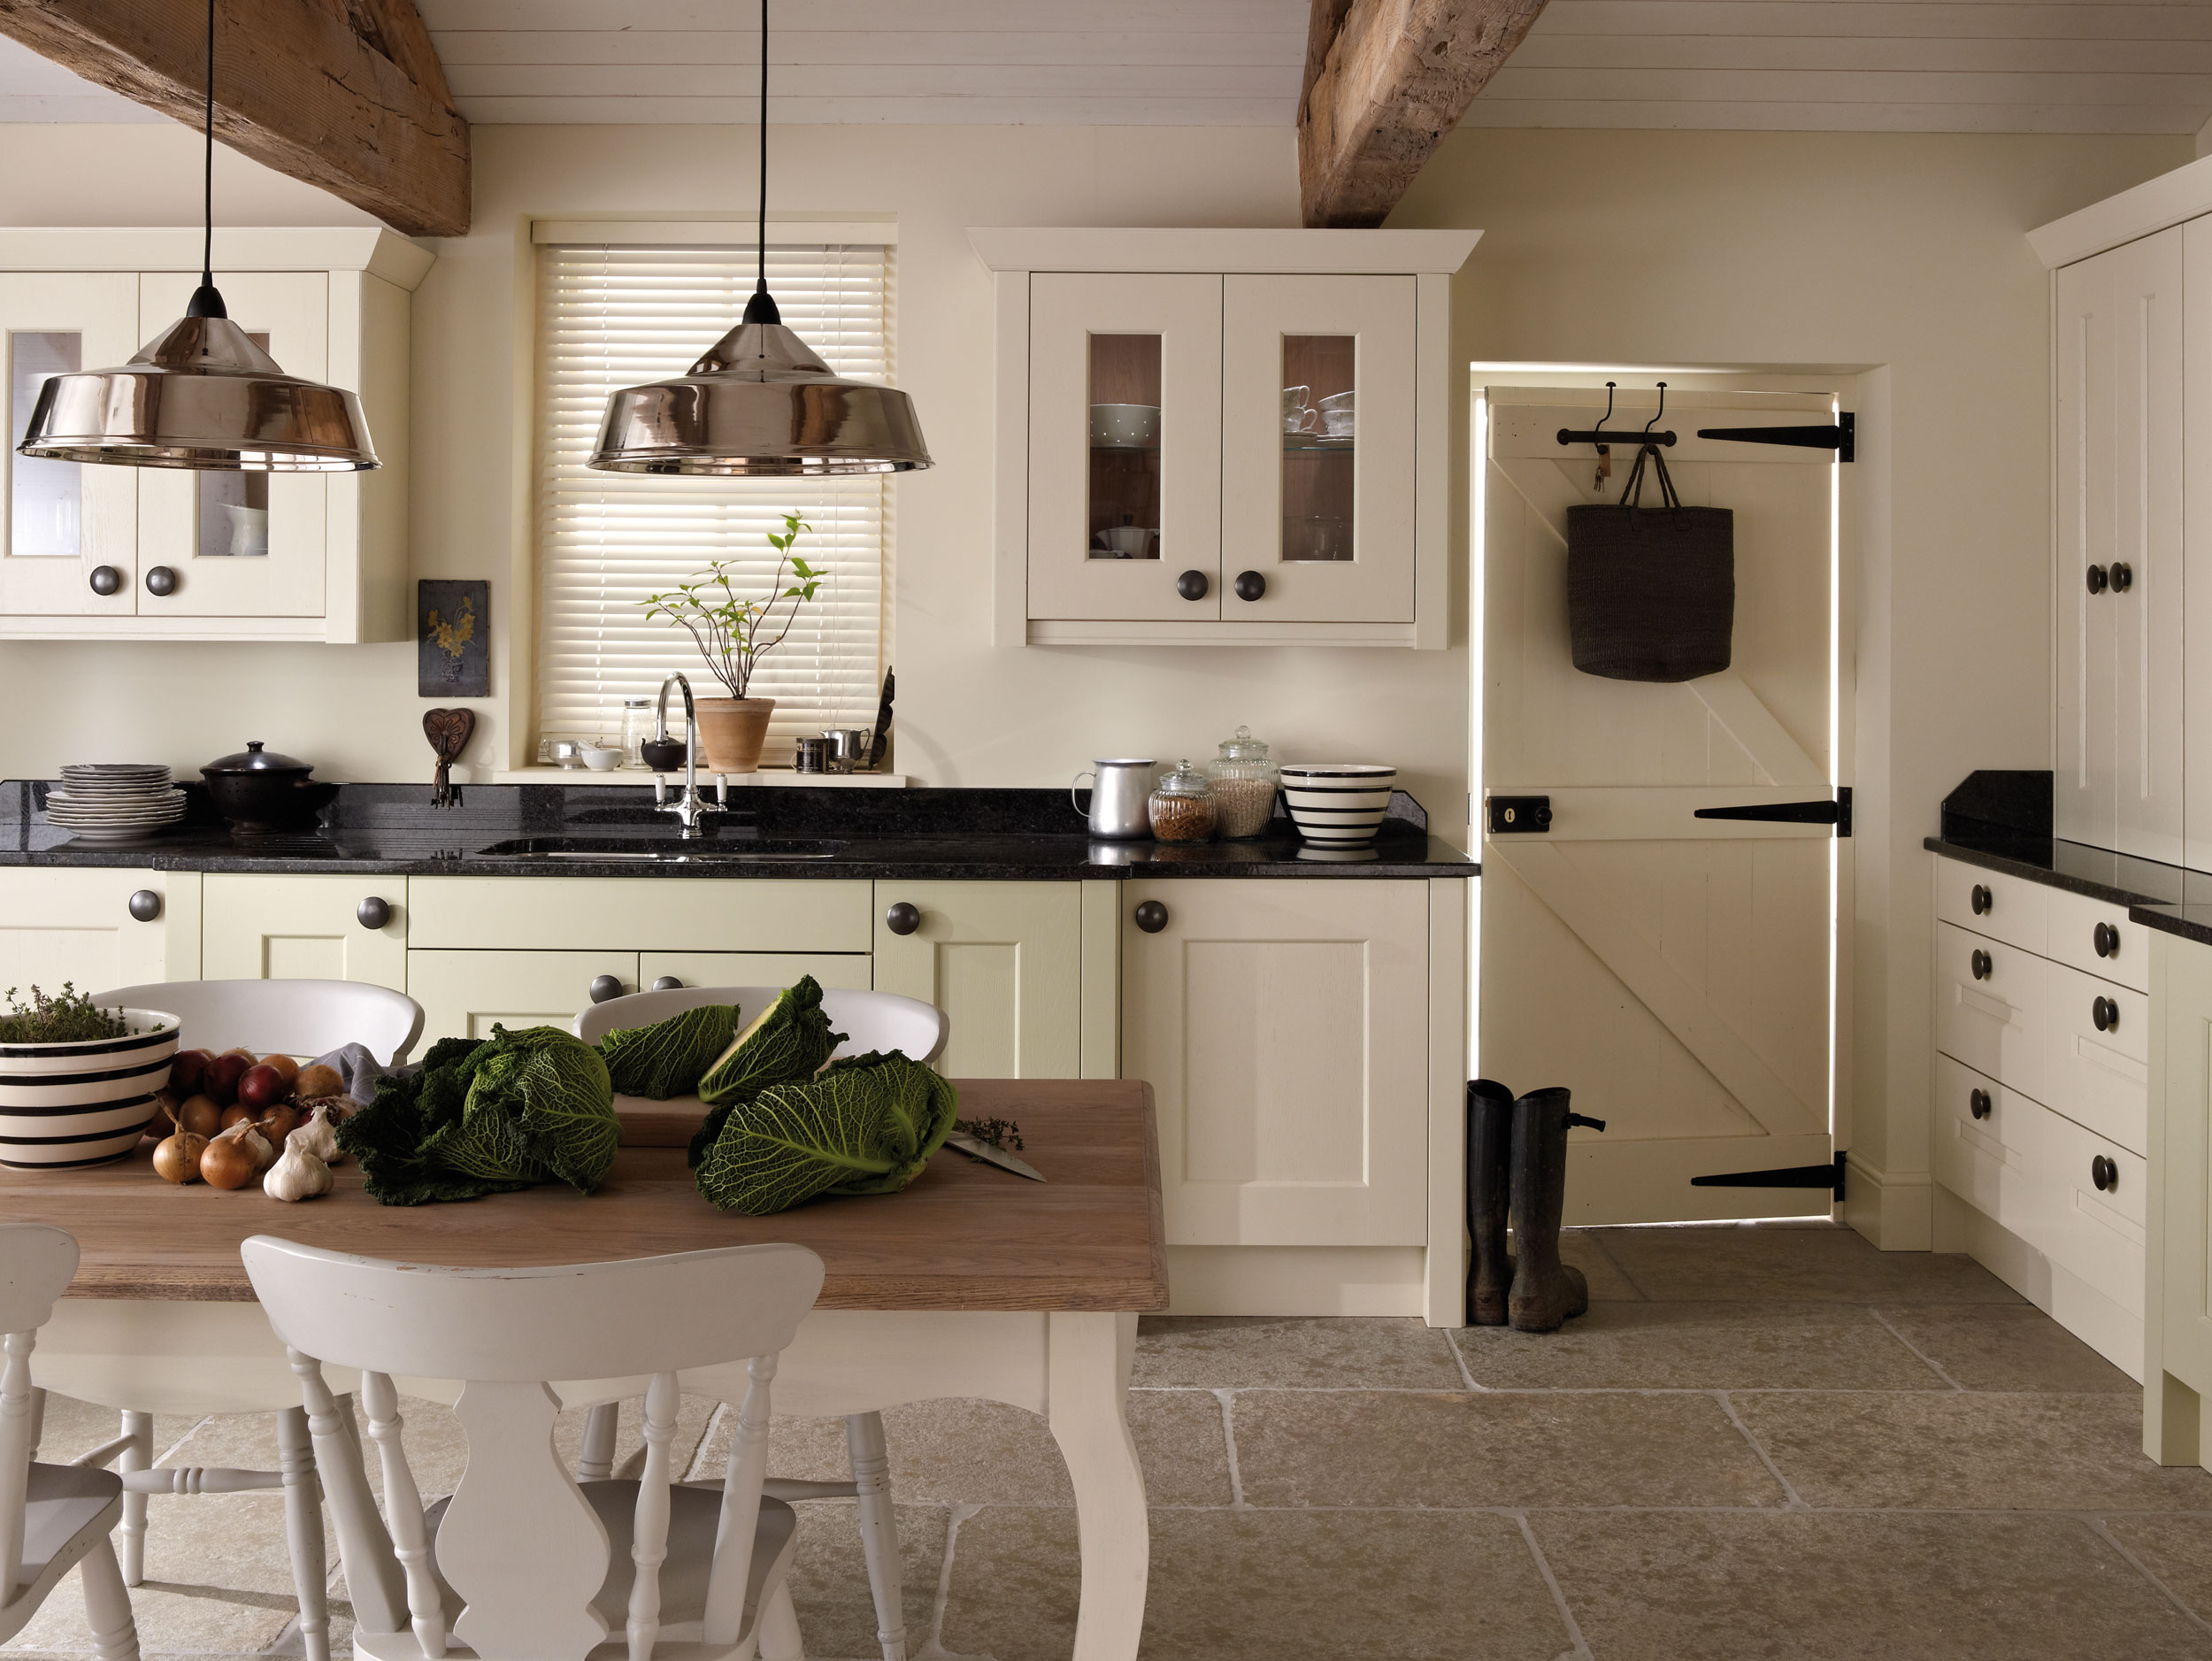 urbanic designs 5 chic ideas to inspire your country style kitchen urbanic designs - Country Kitchen Remodeling Ideas